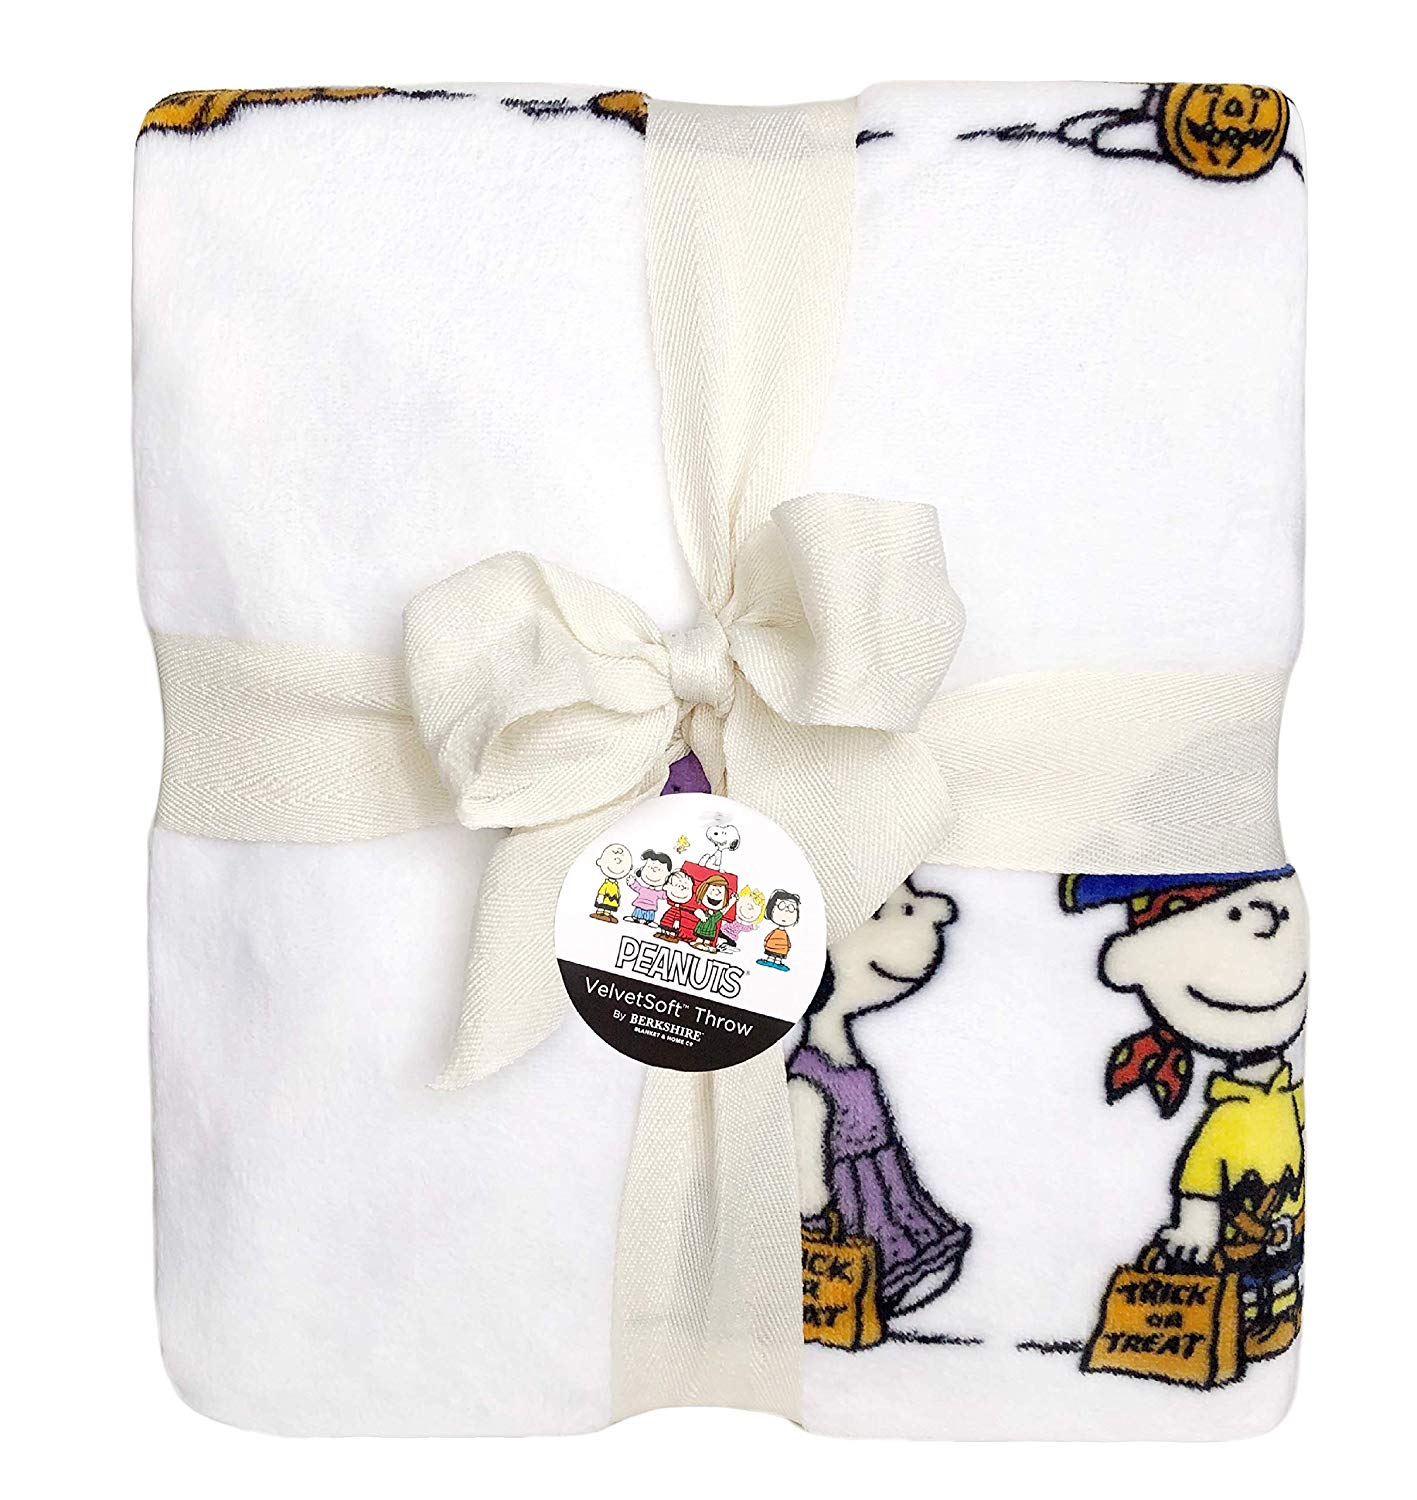 Berkshire Halloween Blanket Peanuts Velvet Soft Plush Blanket (Snoopy Characters in Costumes)